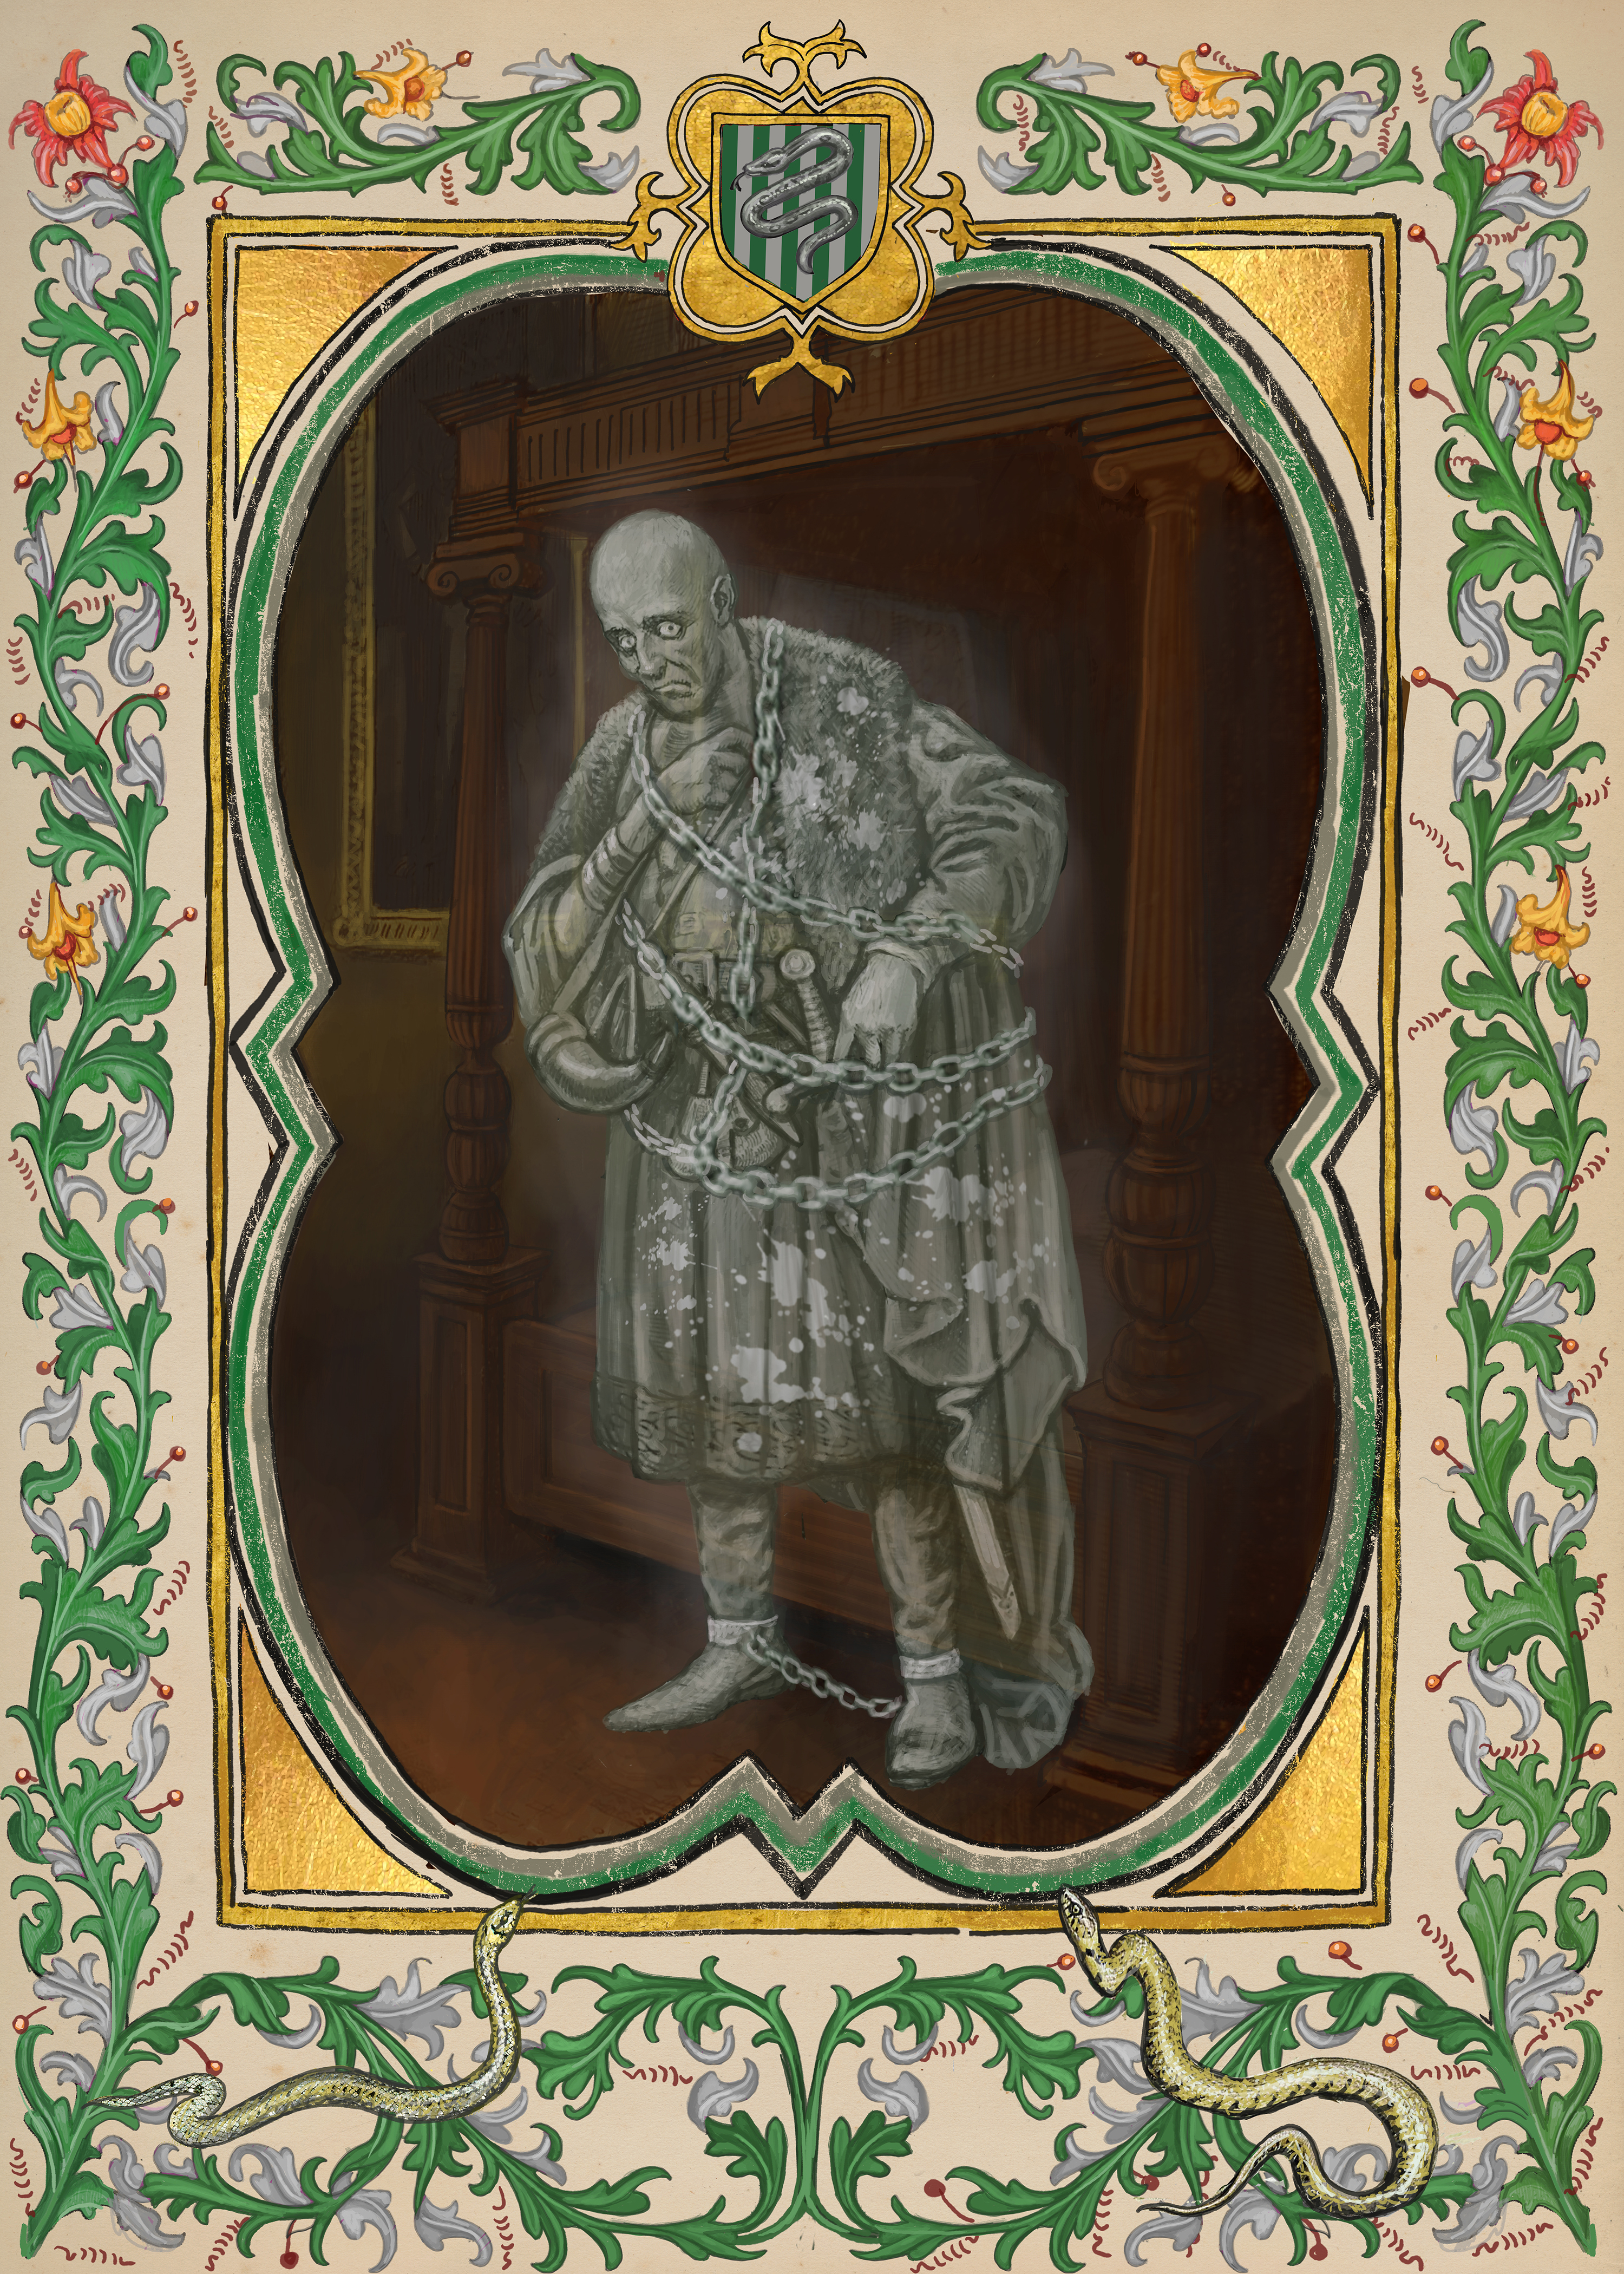 Still image of the Bloody Baron from the Hogwarts Ghosts portraits